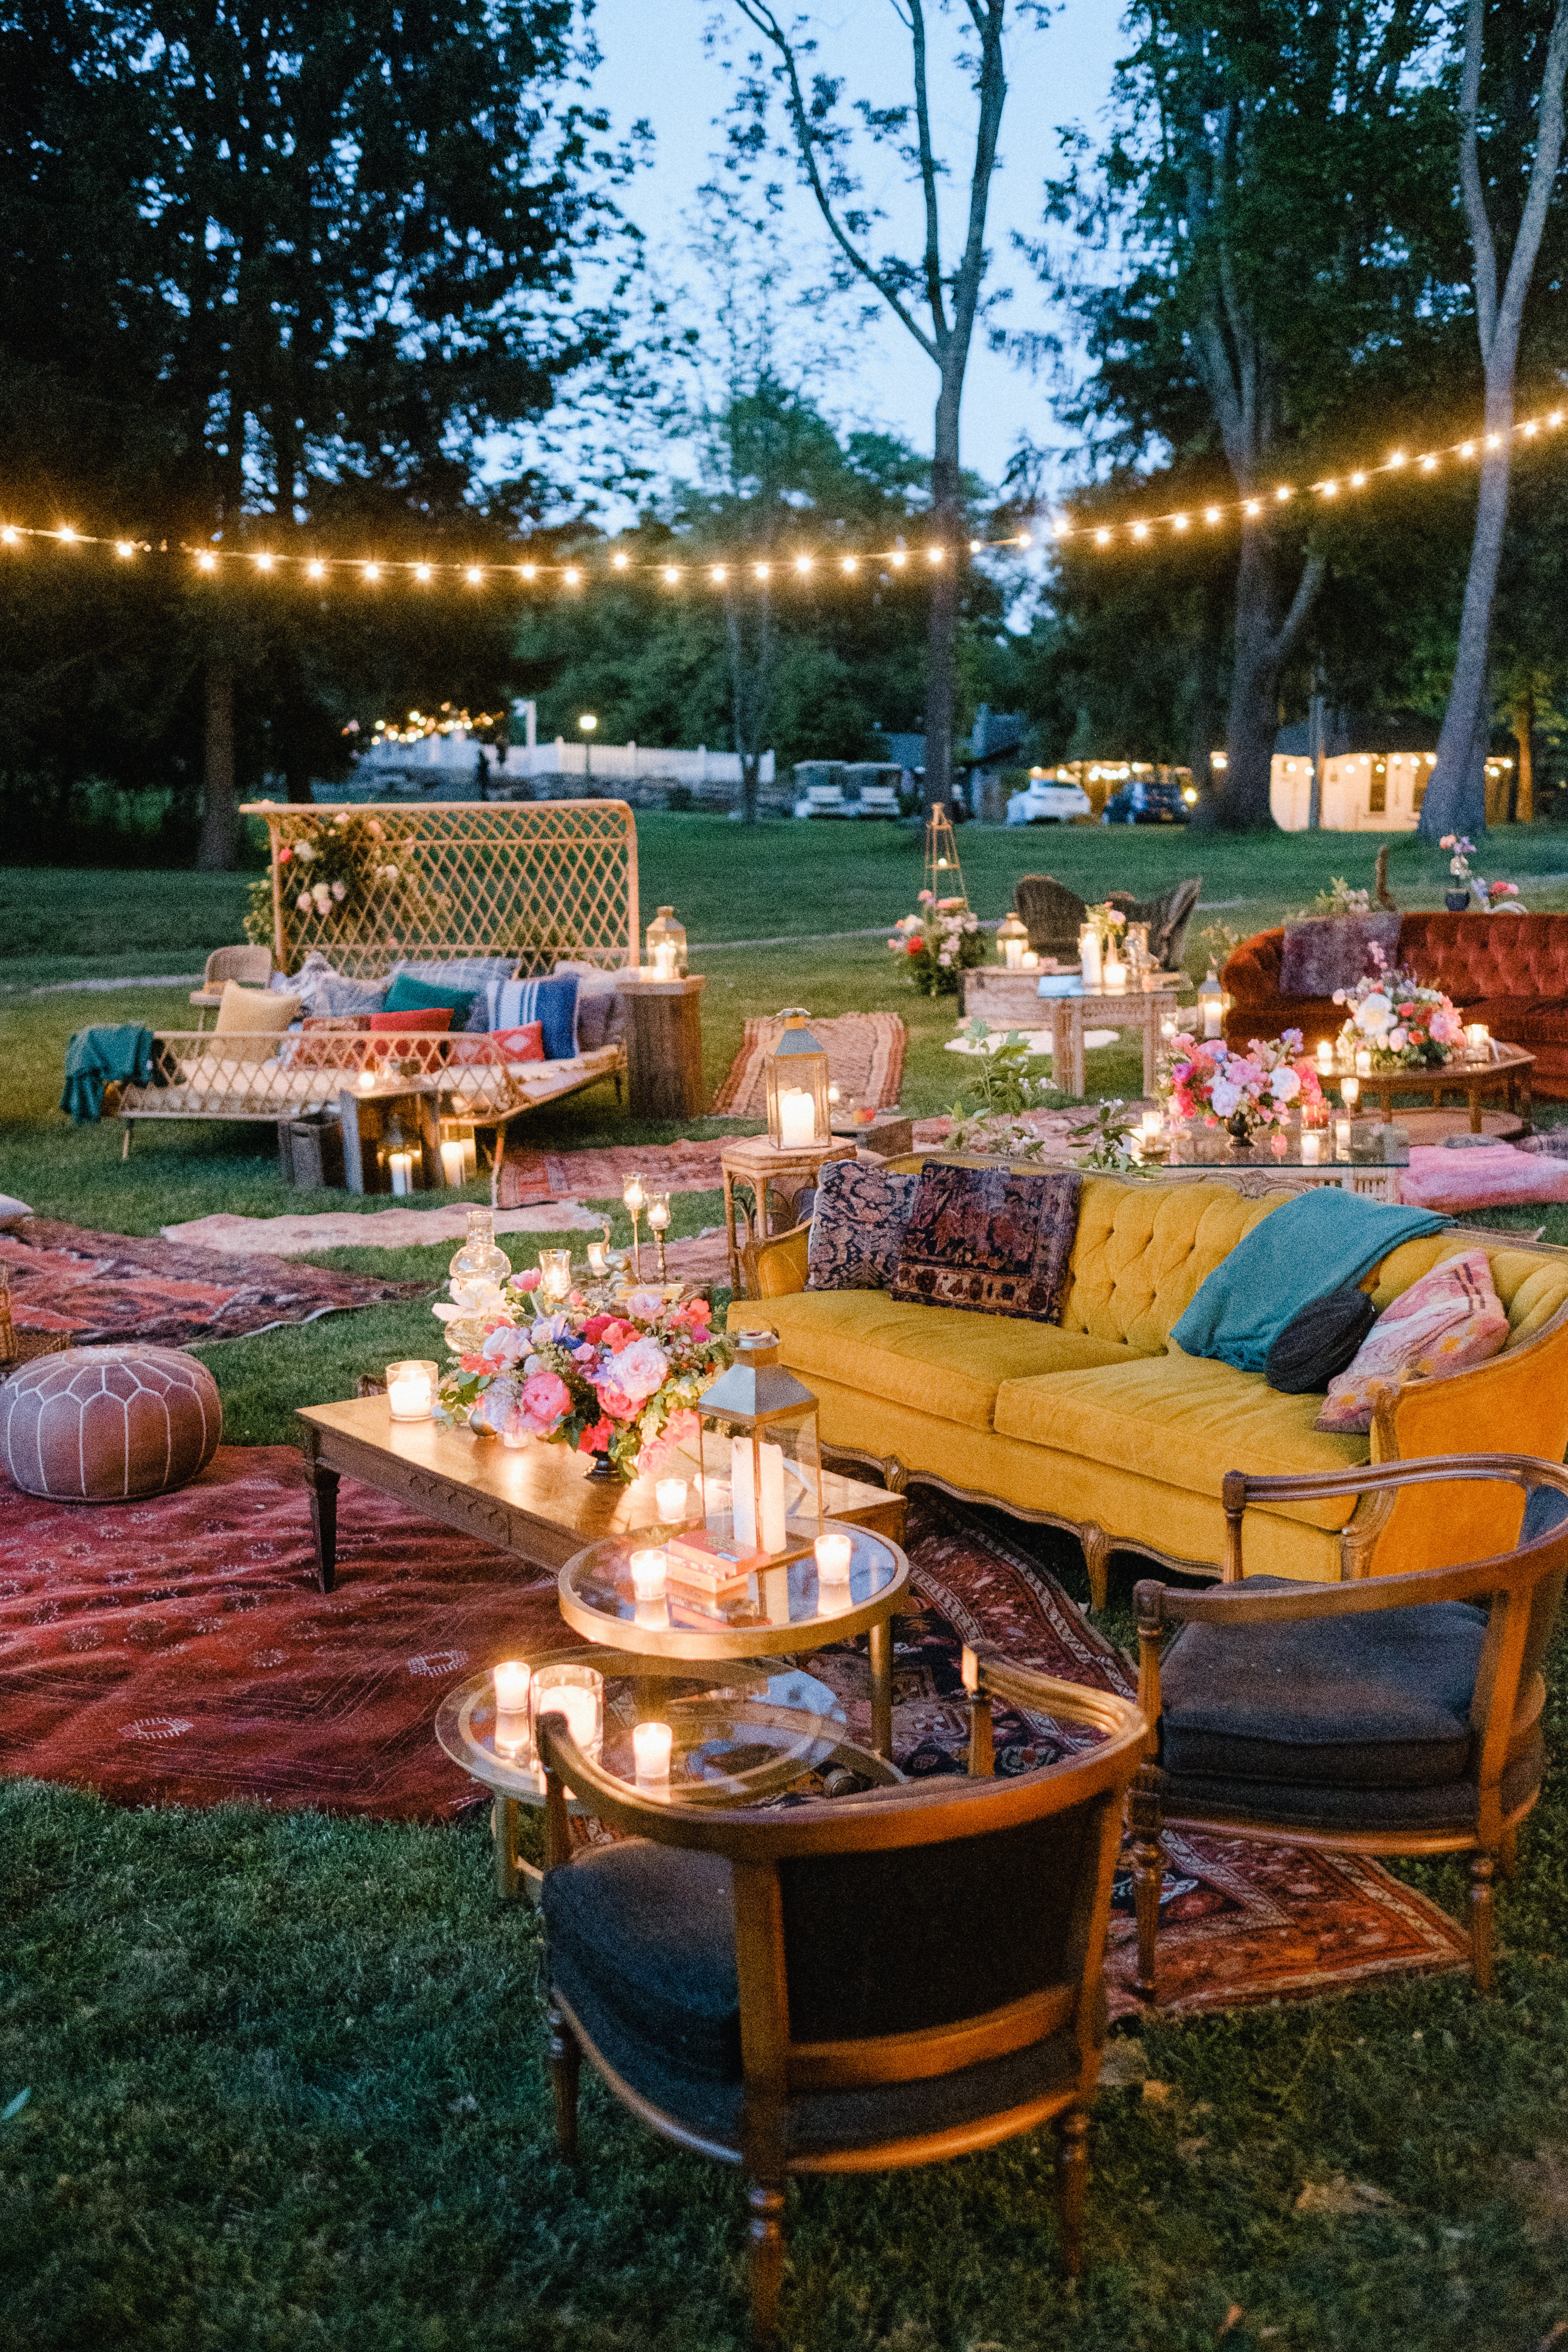 55 Unique Engagement Party Ideas To Kick Off Your Wedding Journey inside 12 Some of the Coolest Initiatives of How to Upgrade Backyard Bbq Engagement Party Ideas